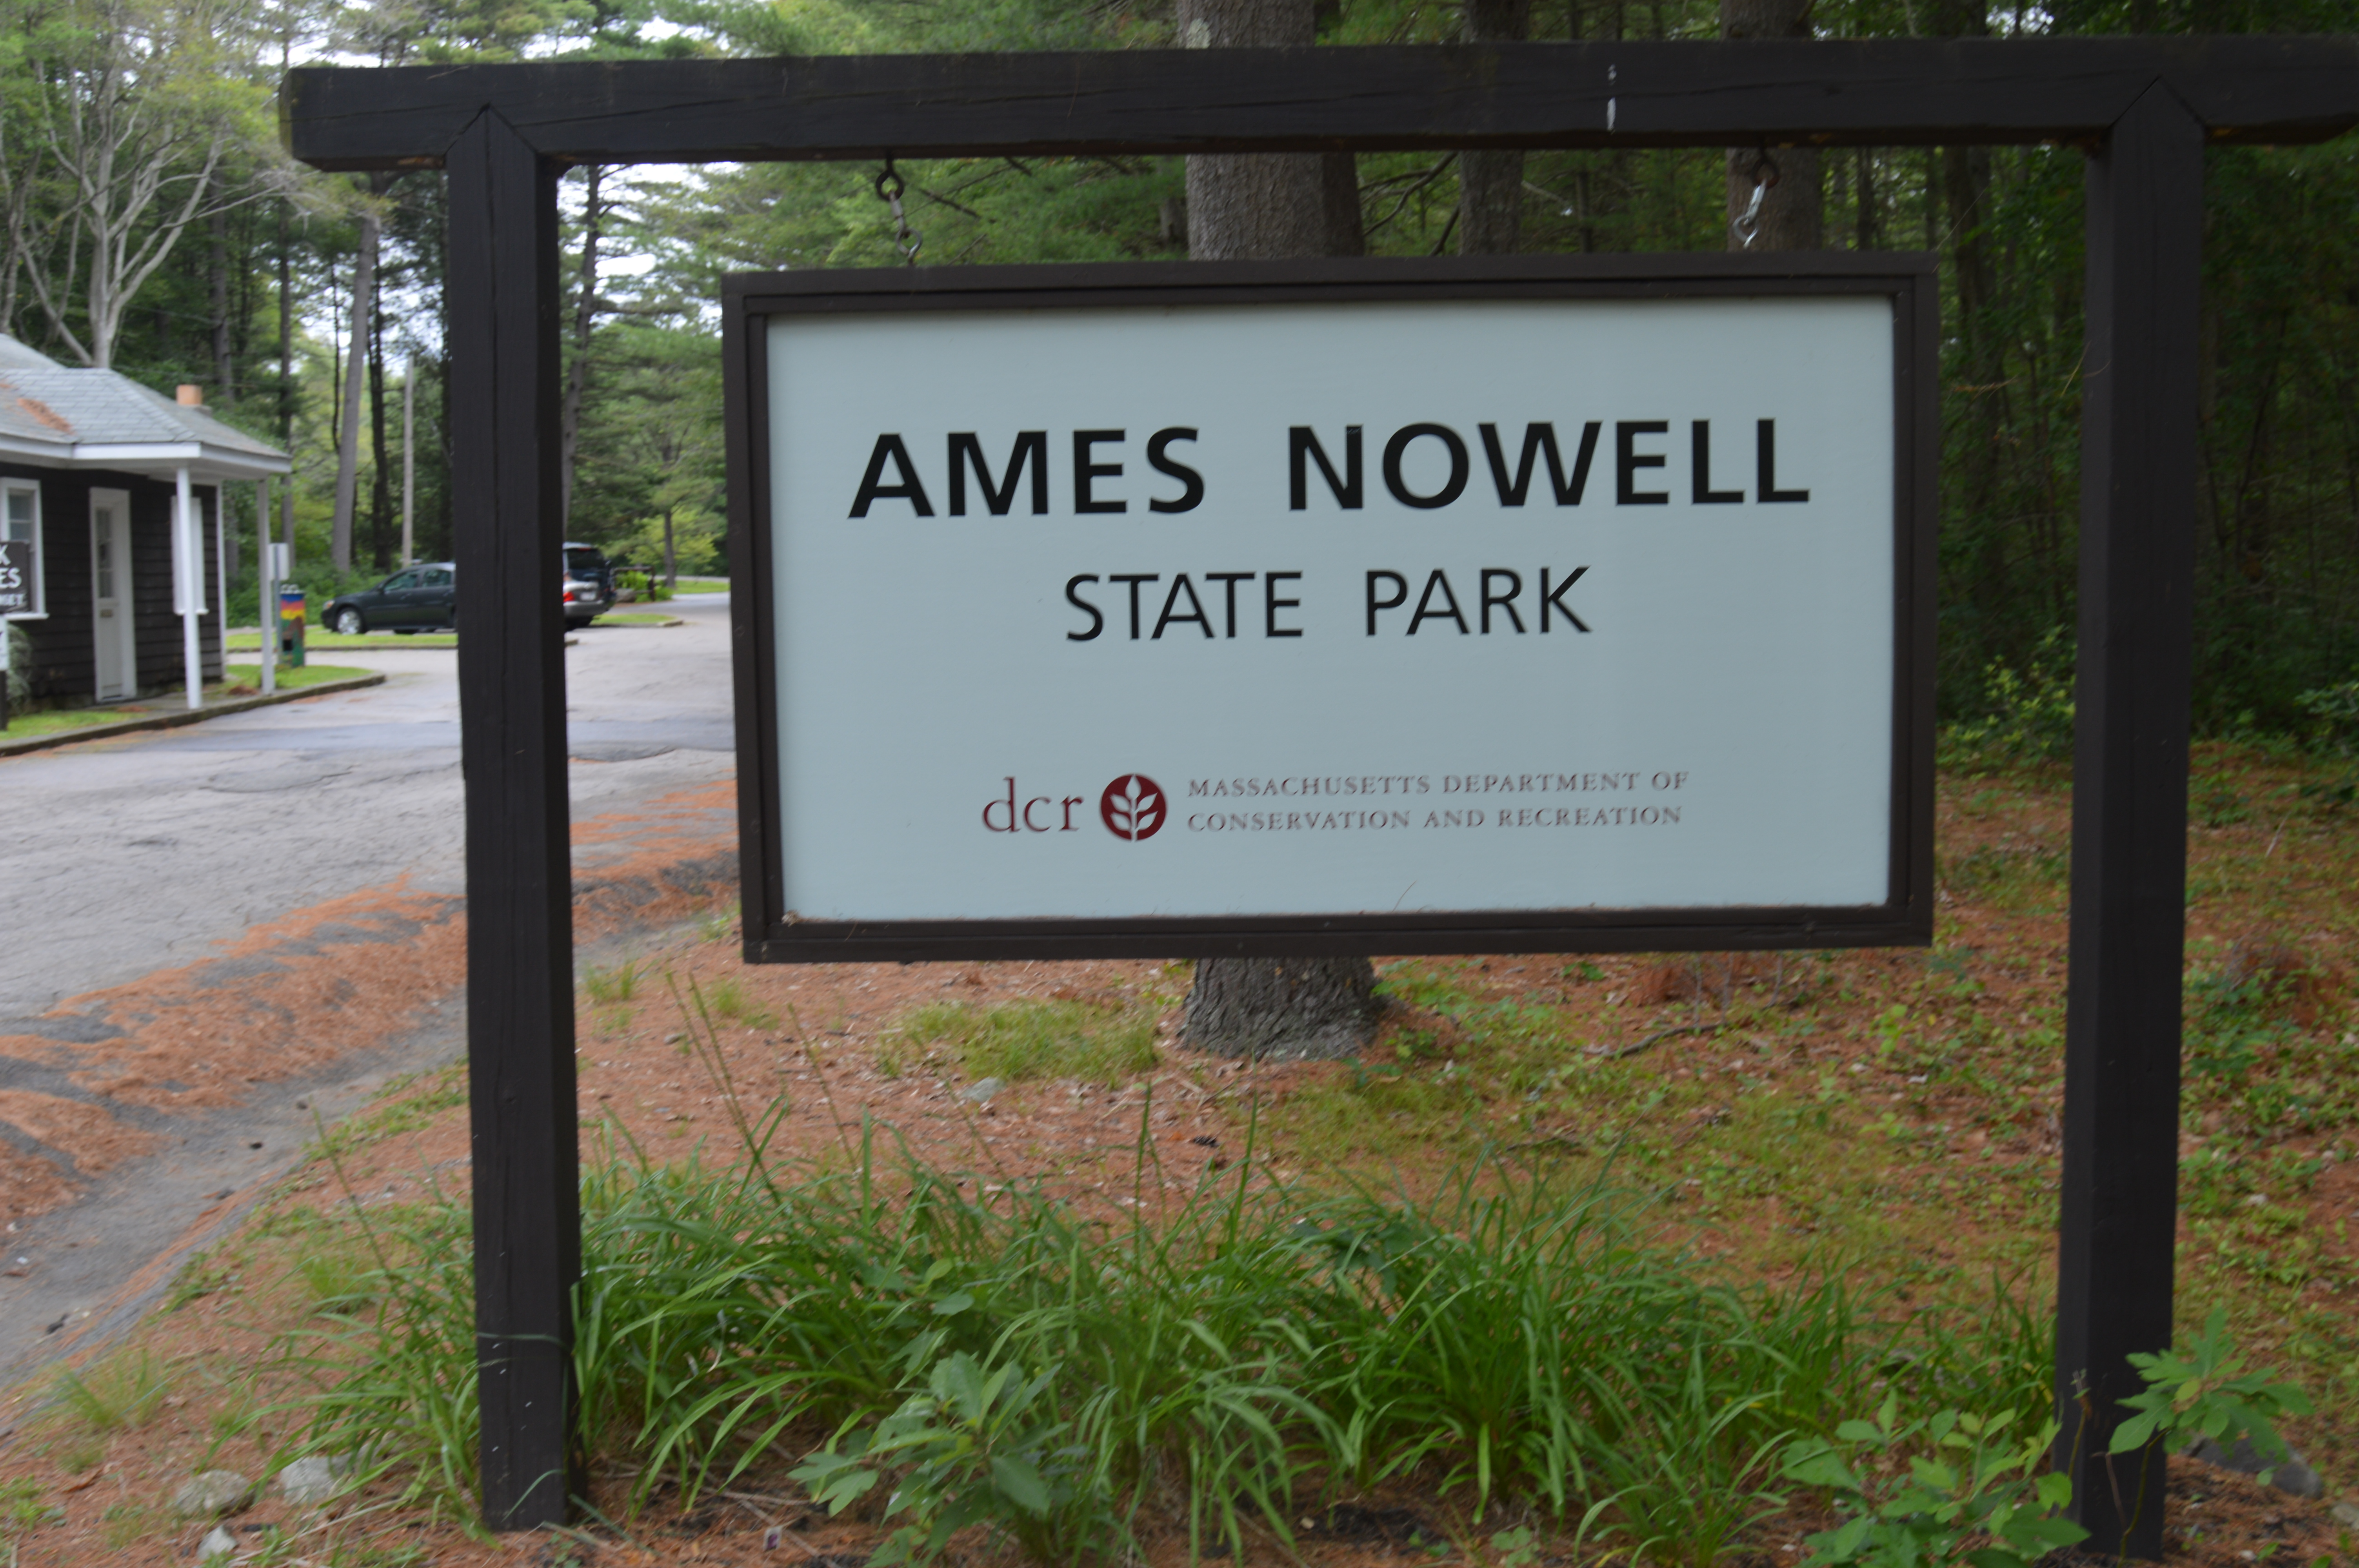 Ames nowell state park